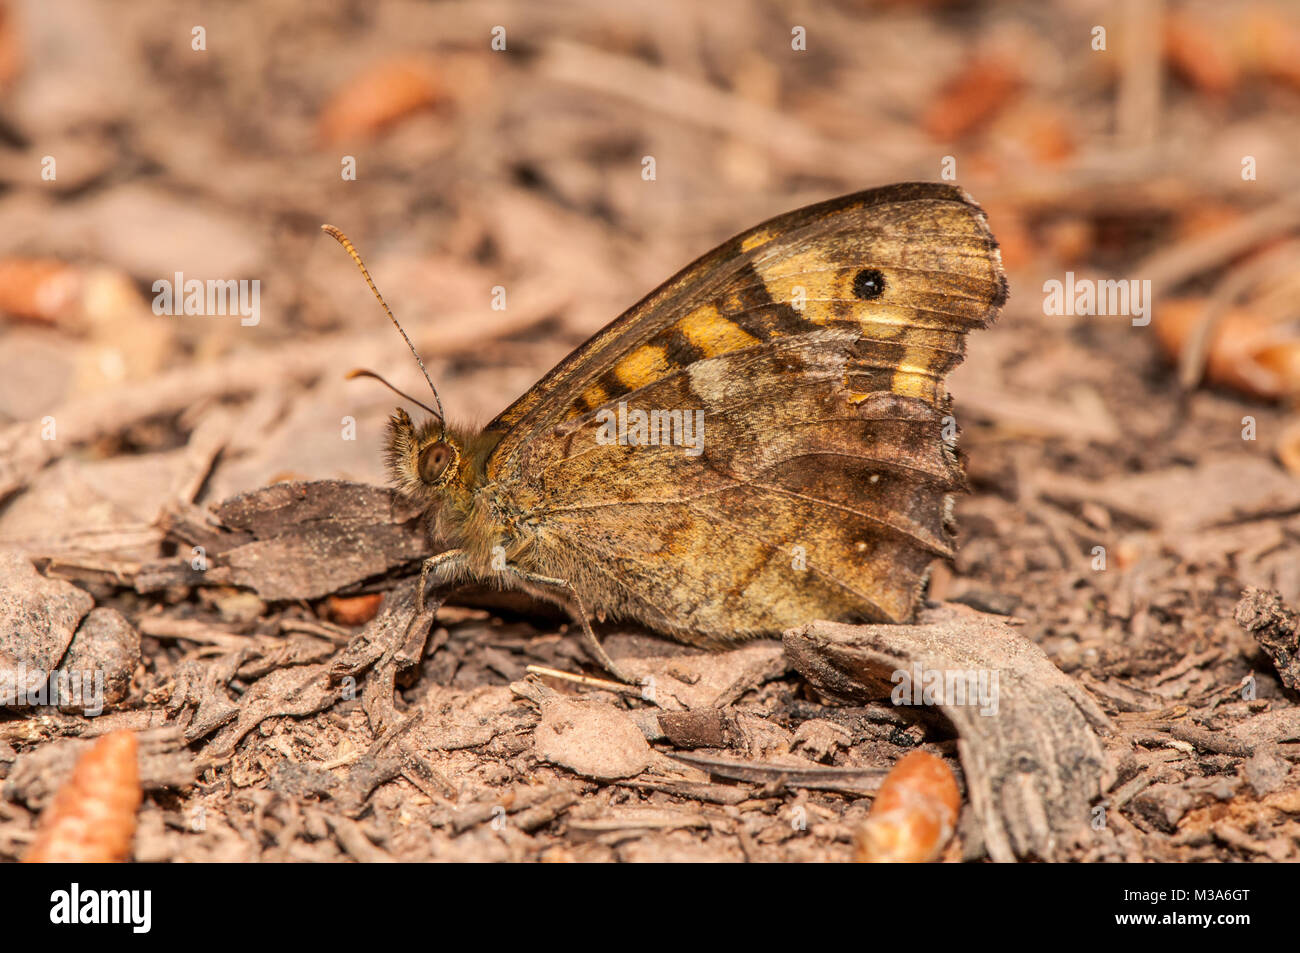 speckled wood, Pararge aegeria, on the ground - Stock Image